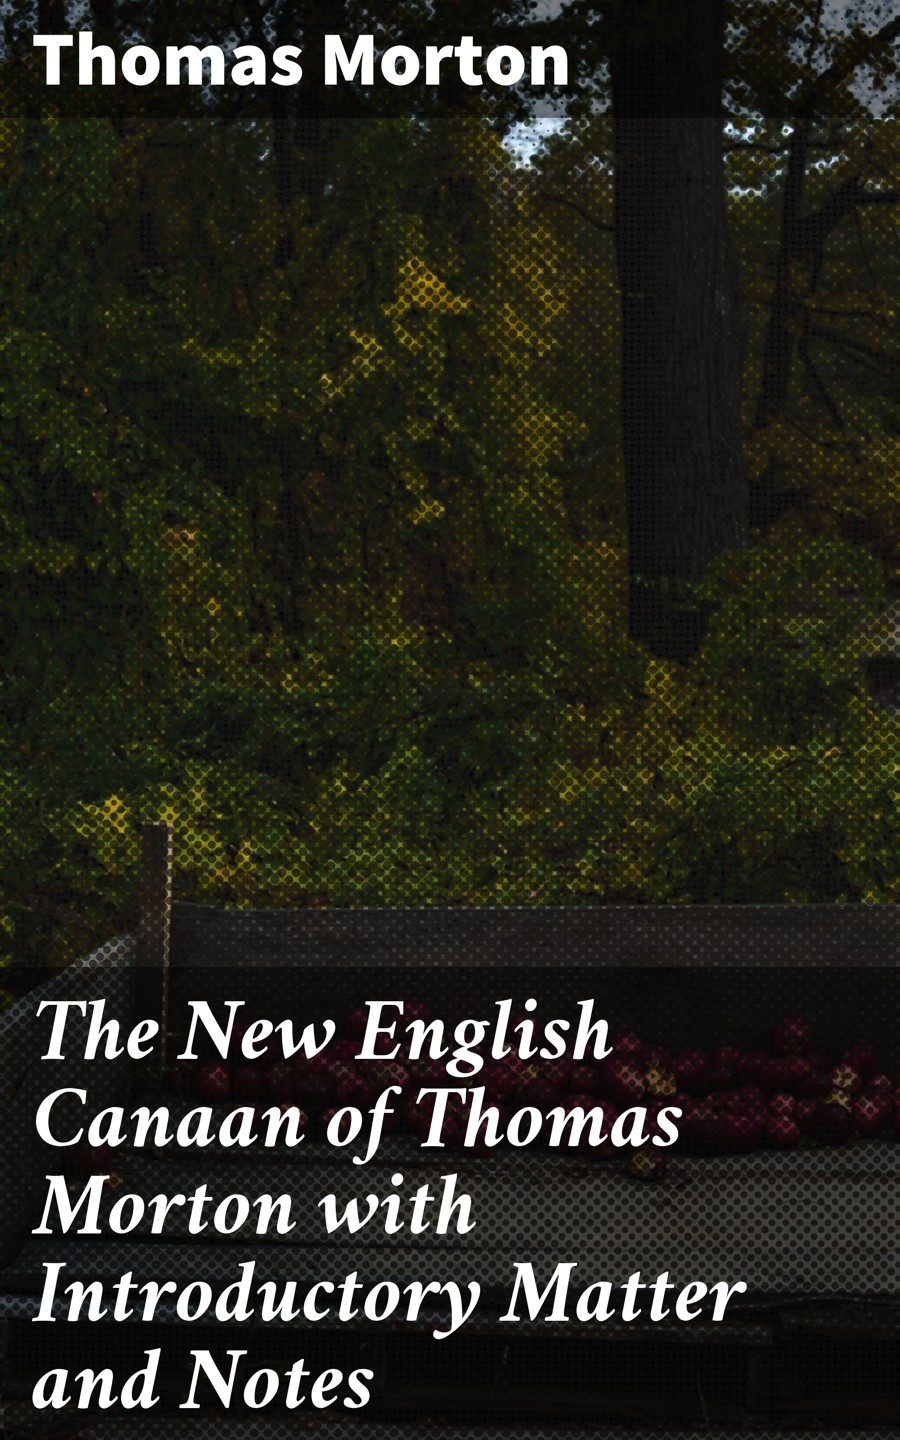 Thomas Morton The New English Canaan of Thomas Morton with Introductory Matter and Notes carl e morton morton s college student dictionary first edition